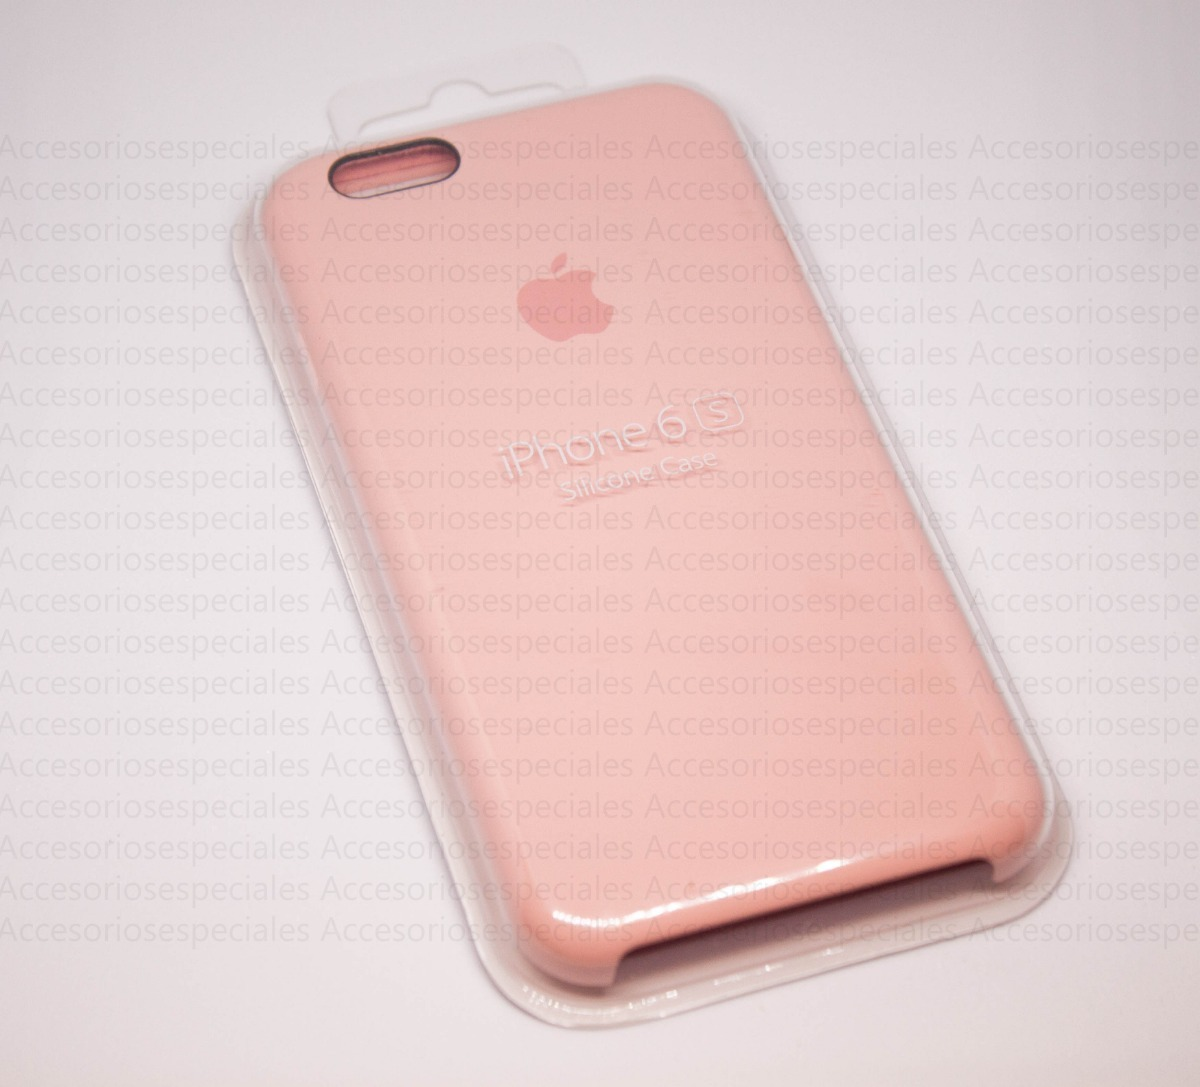 e96d640777f Funda iPhone 6s Silicone Rosa Case Original Apple 100% - $ 599,00 en ...